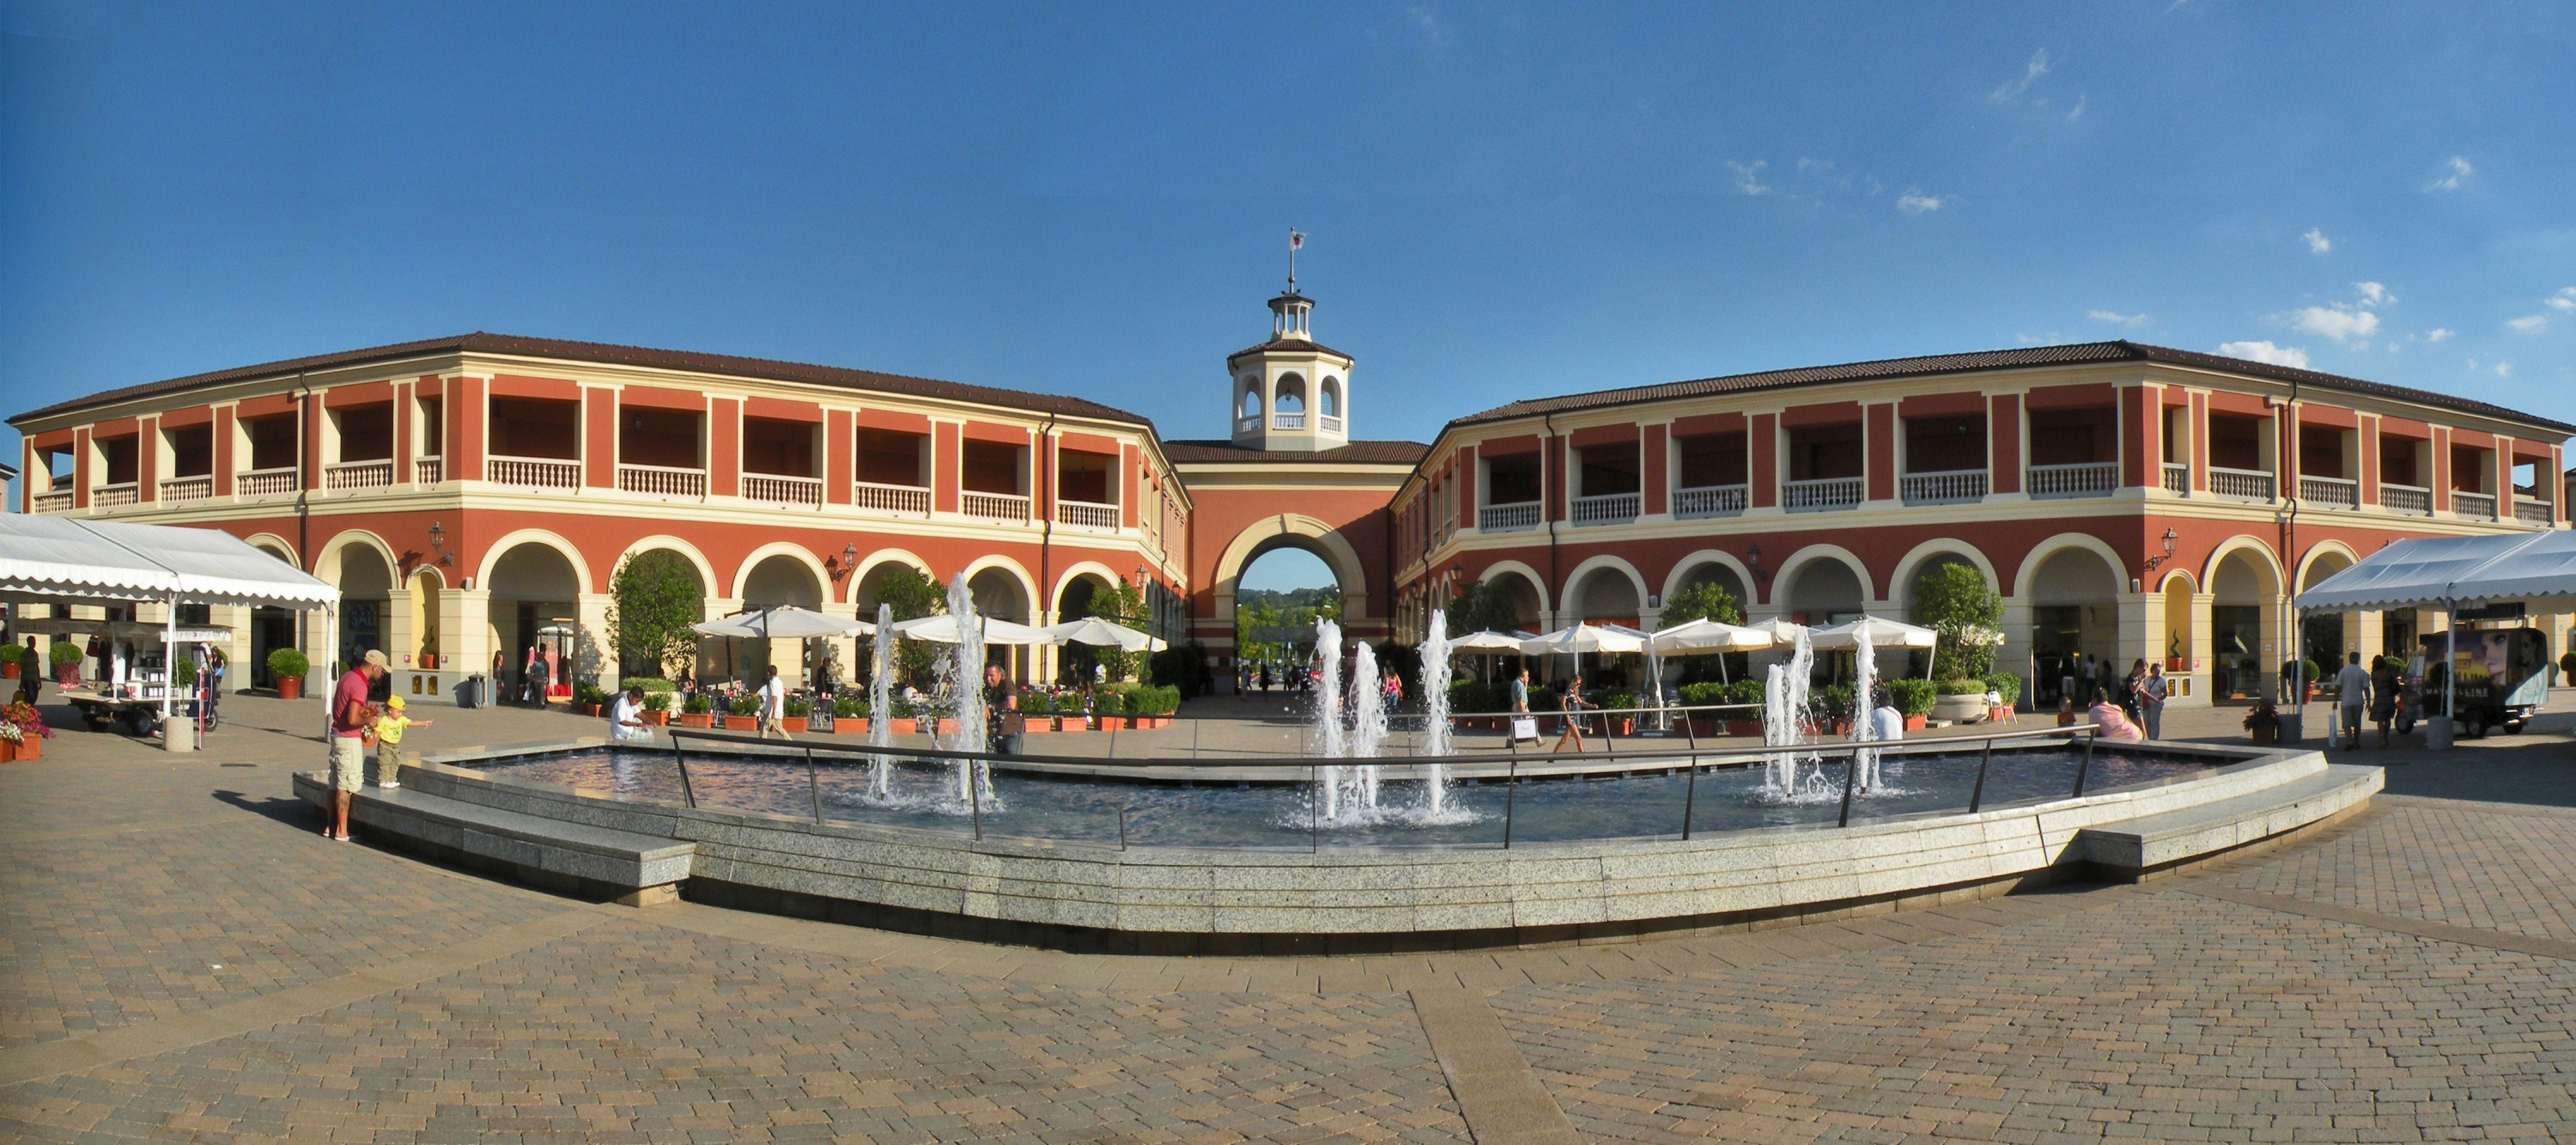 Serravalle designer outlet for Serravalle designer outlet